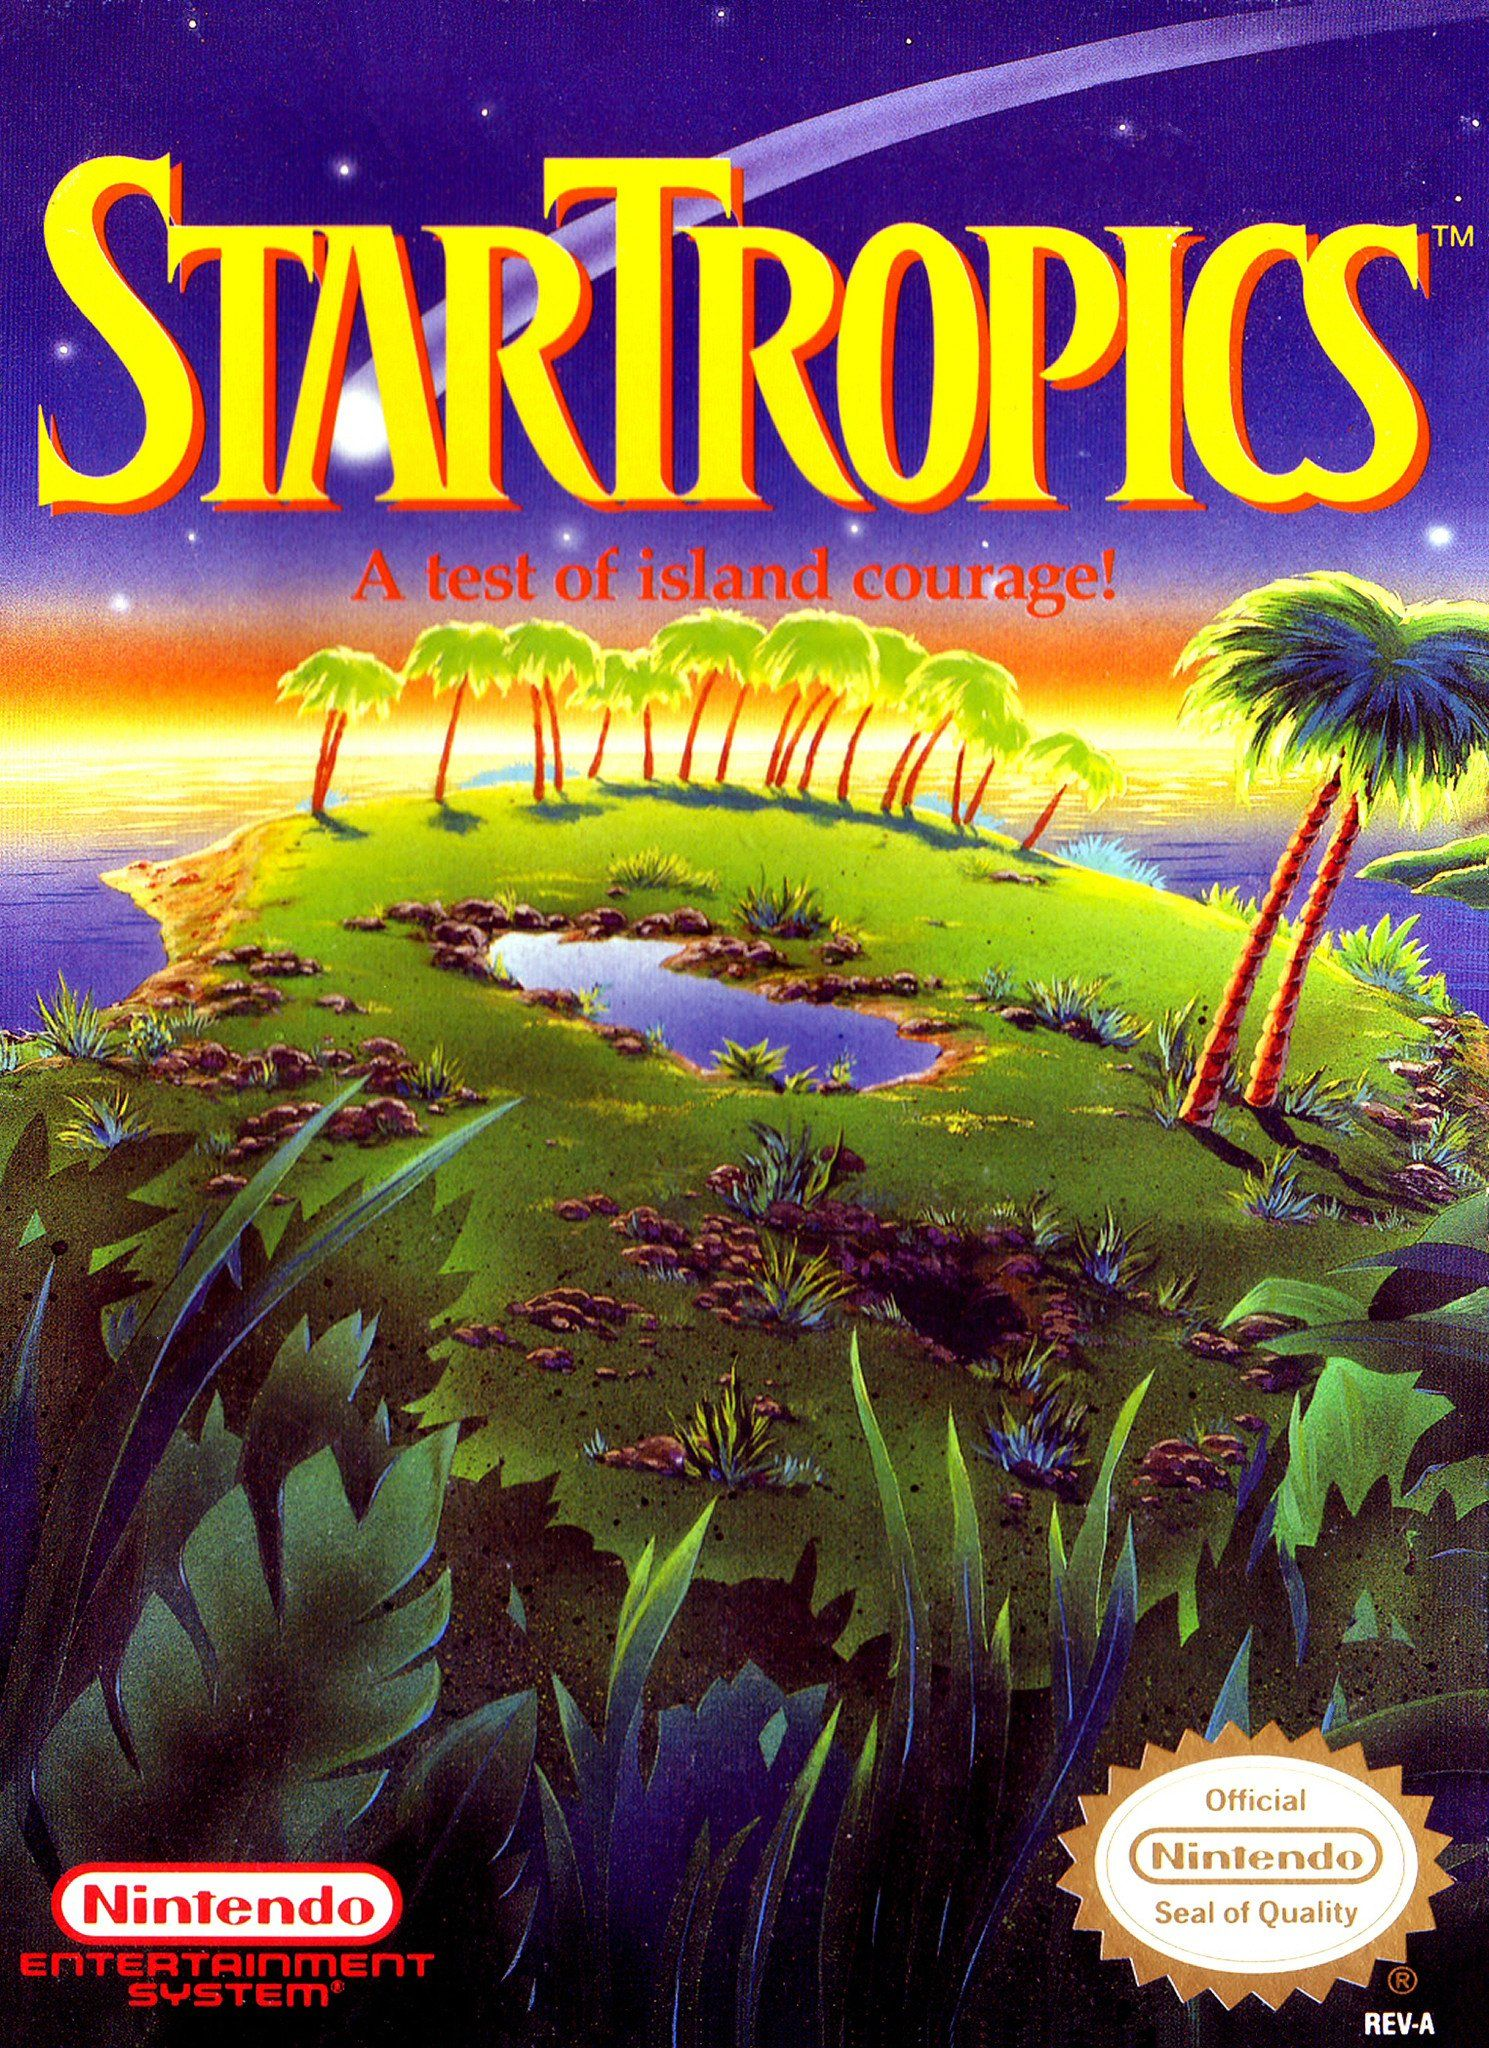 Retro Star Tropics Game Poster////NES Game Poster////Video Game Poster////Vintage Game